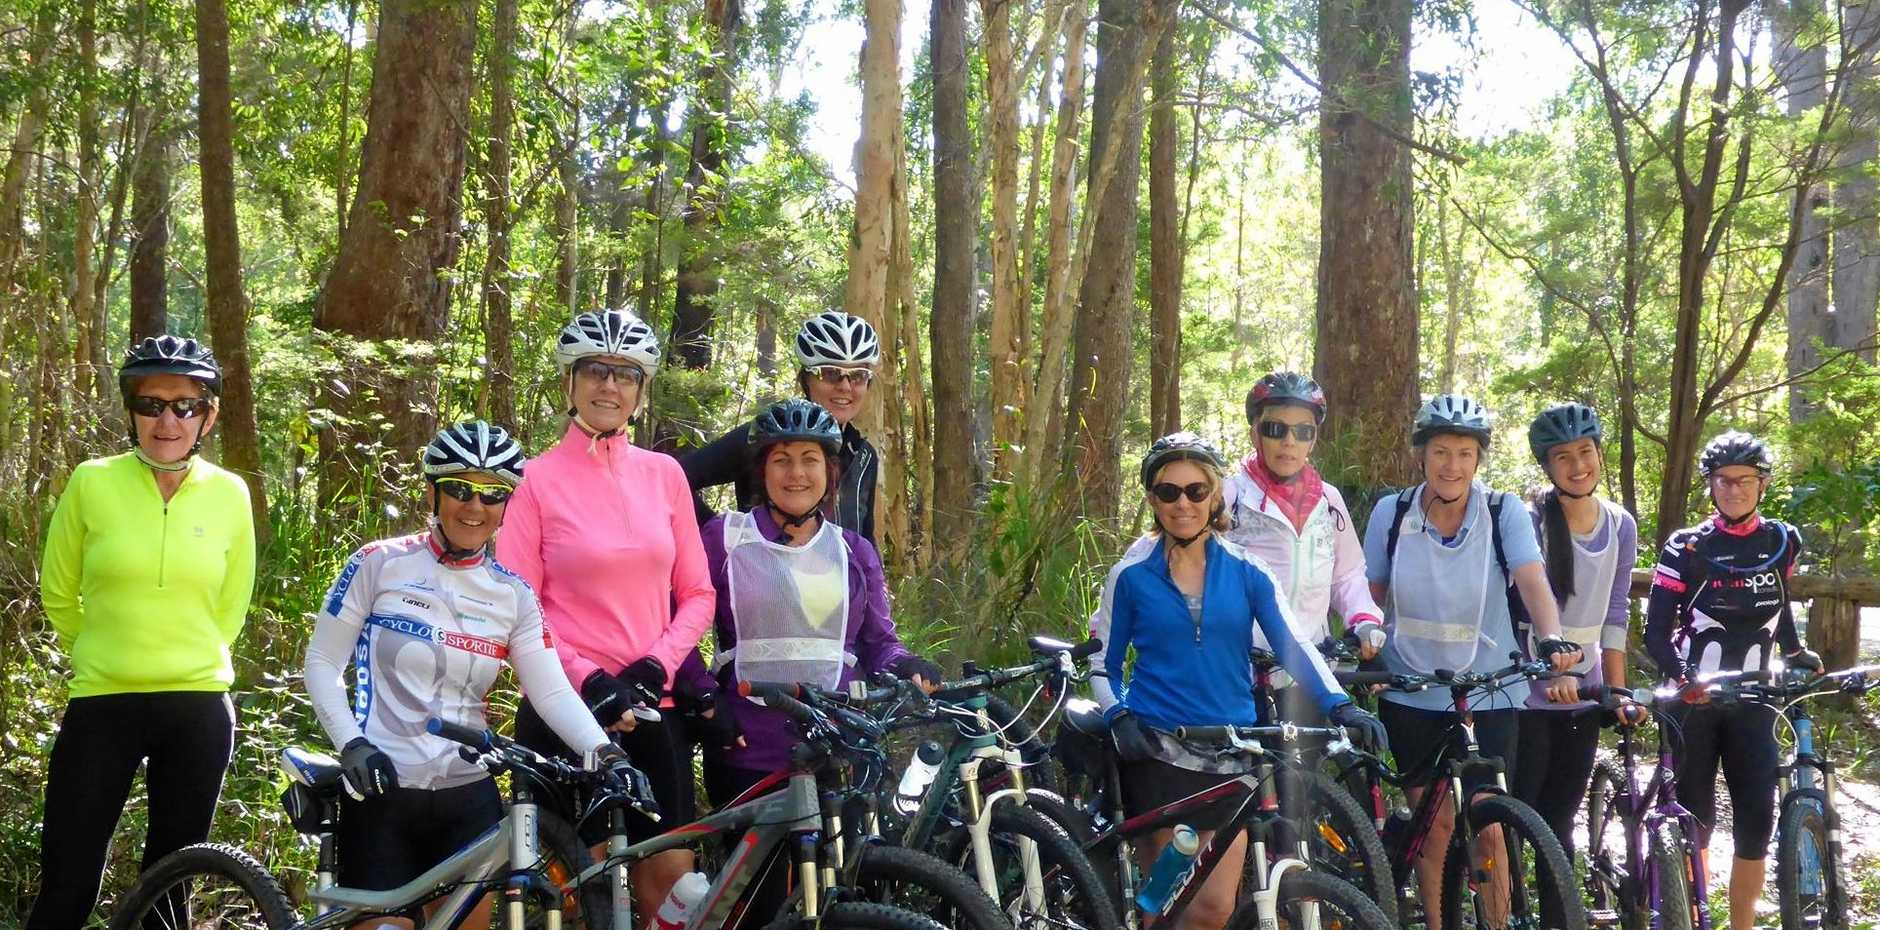 Cycling Australia's She Rides program gets rolling again in Noosa.